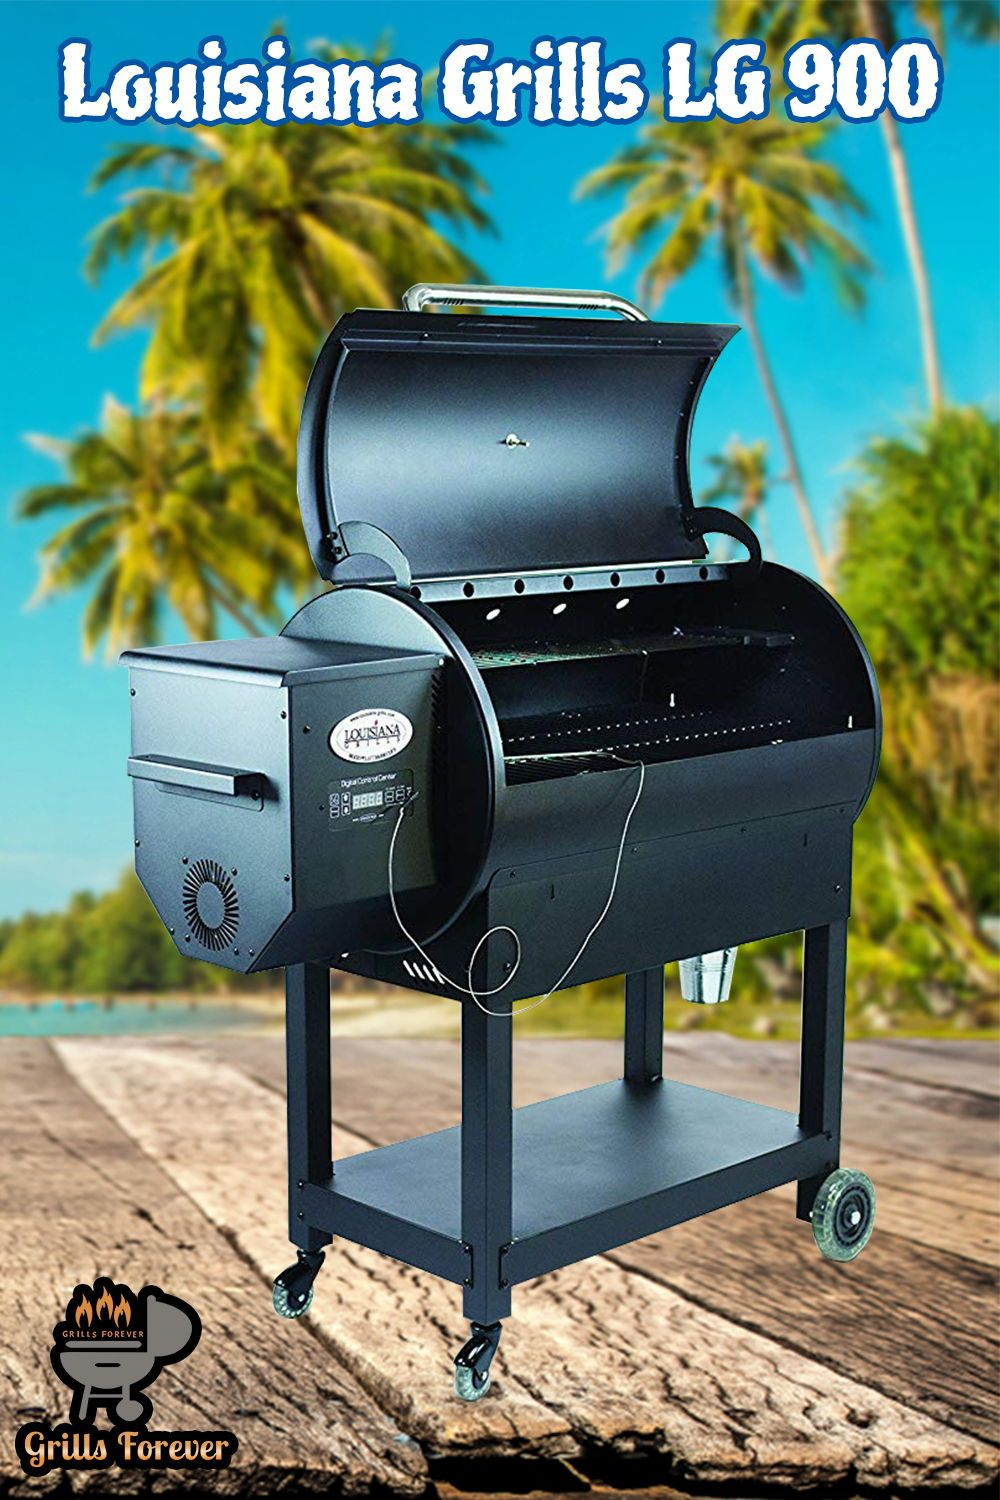 Louisiana Grills LG 900 Review | Top Grilling Brands | Grilling, Gas